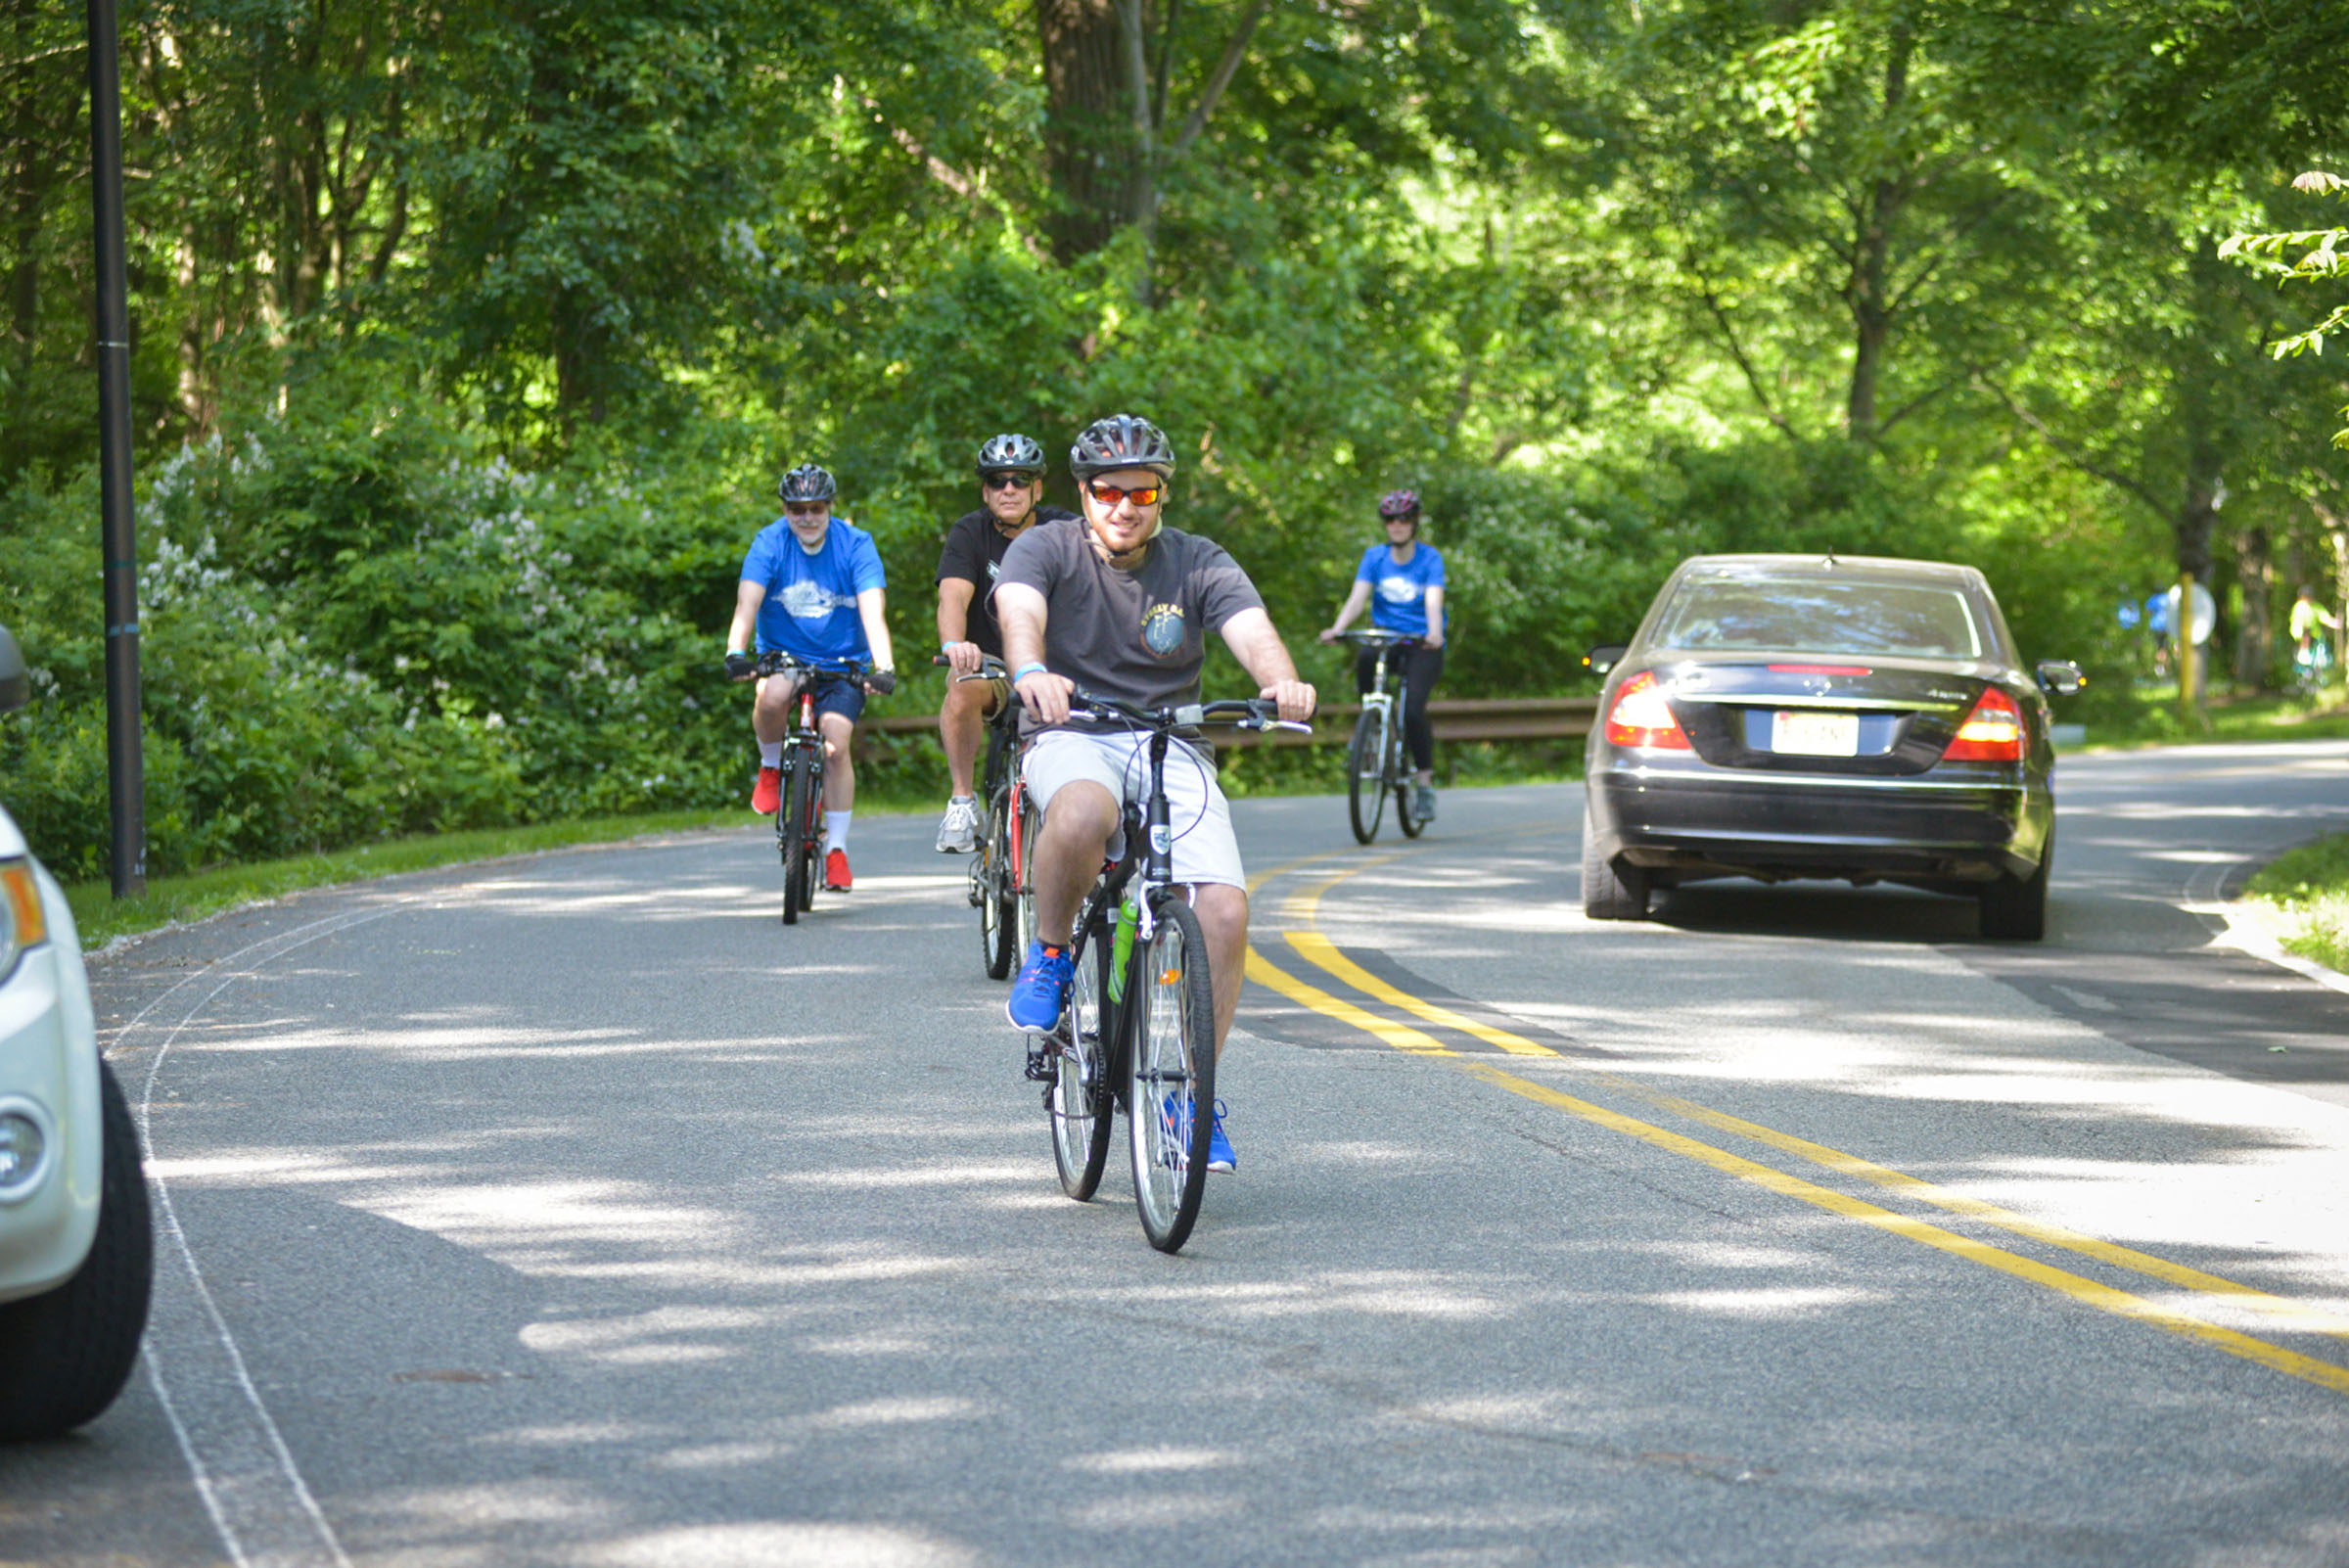 2017-06-04 GTD4A Charity Bike Ride - BCC - Paramus NJ-2024.jpg